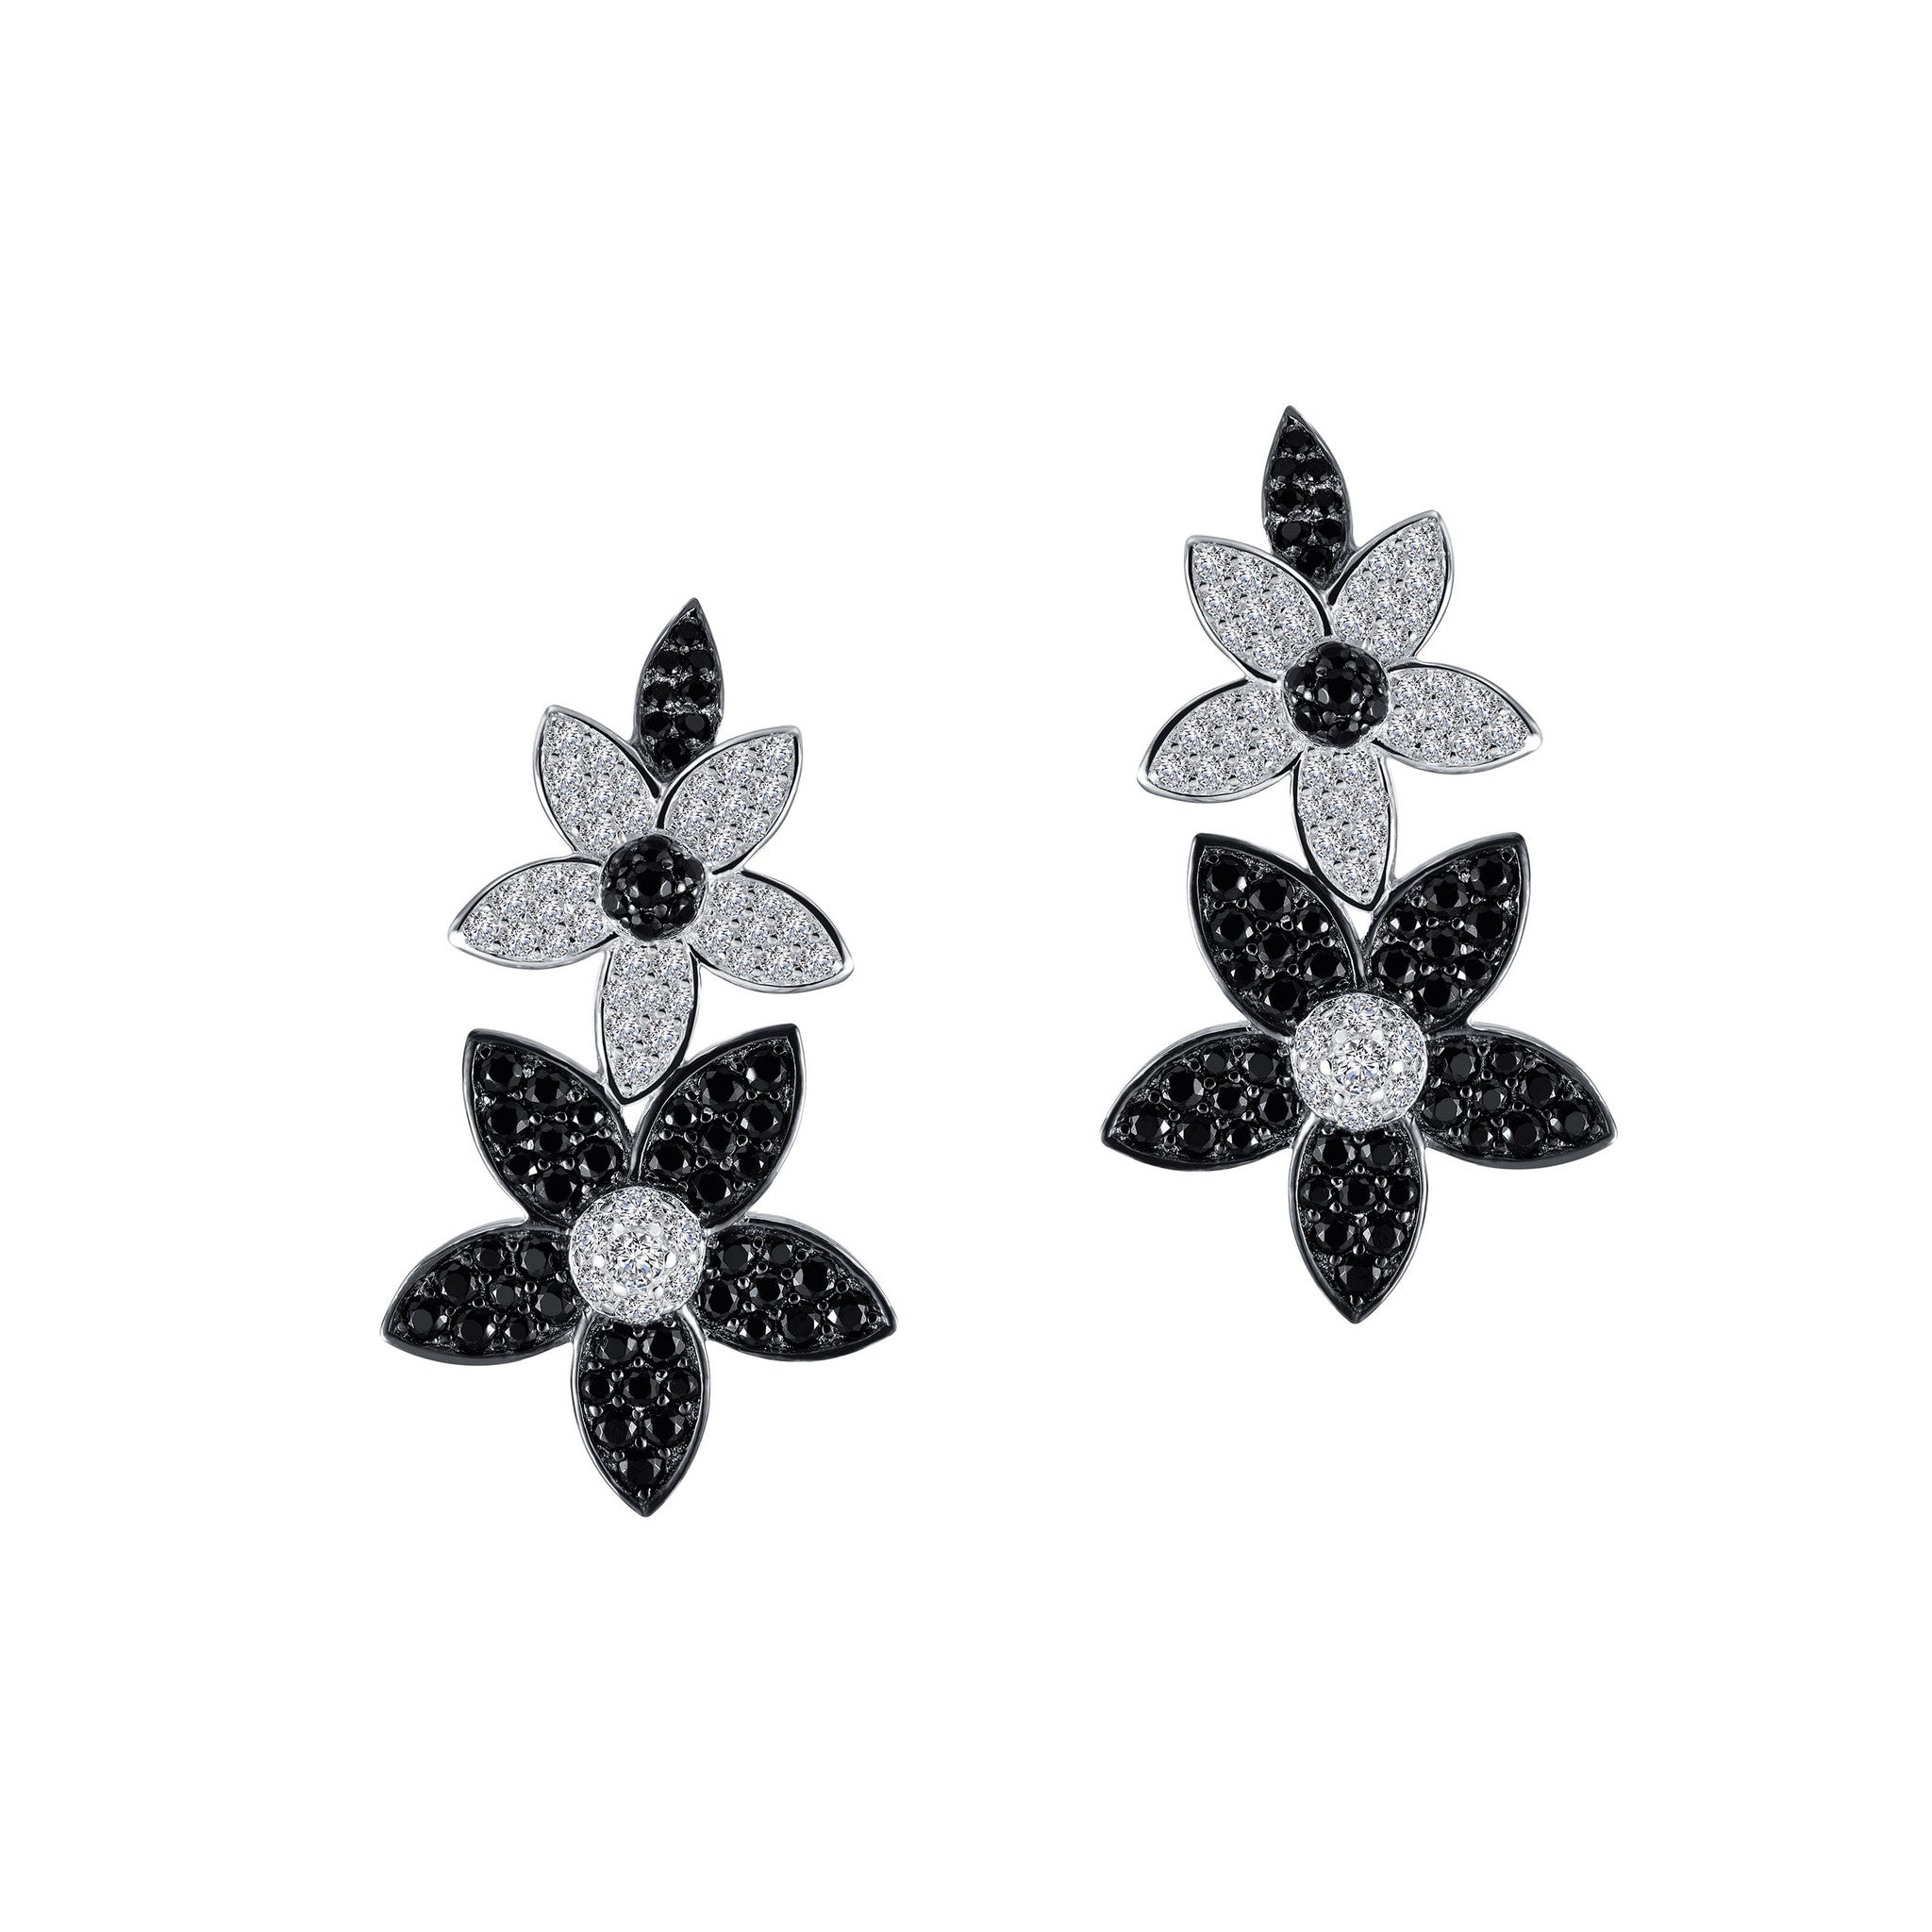 Double Flower Sterling Silver and Platinum Earrings